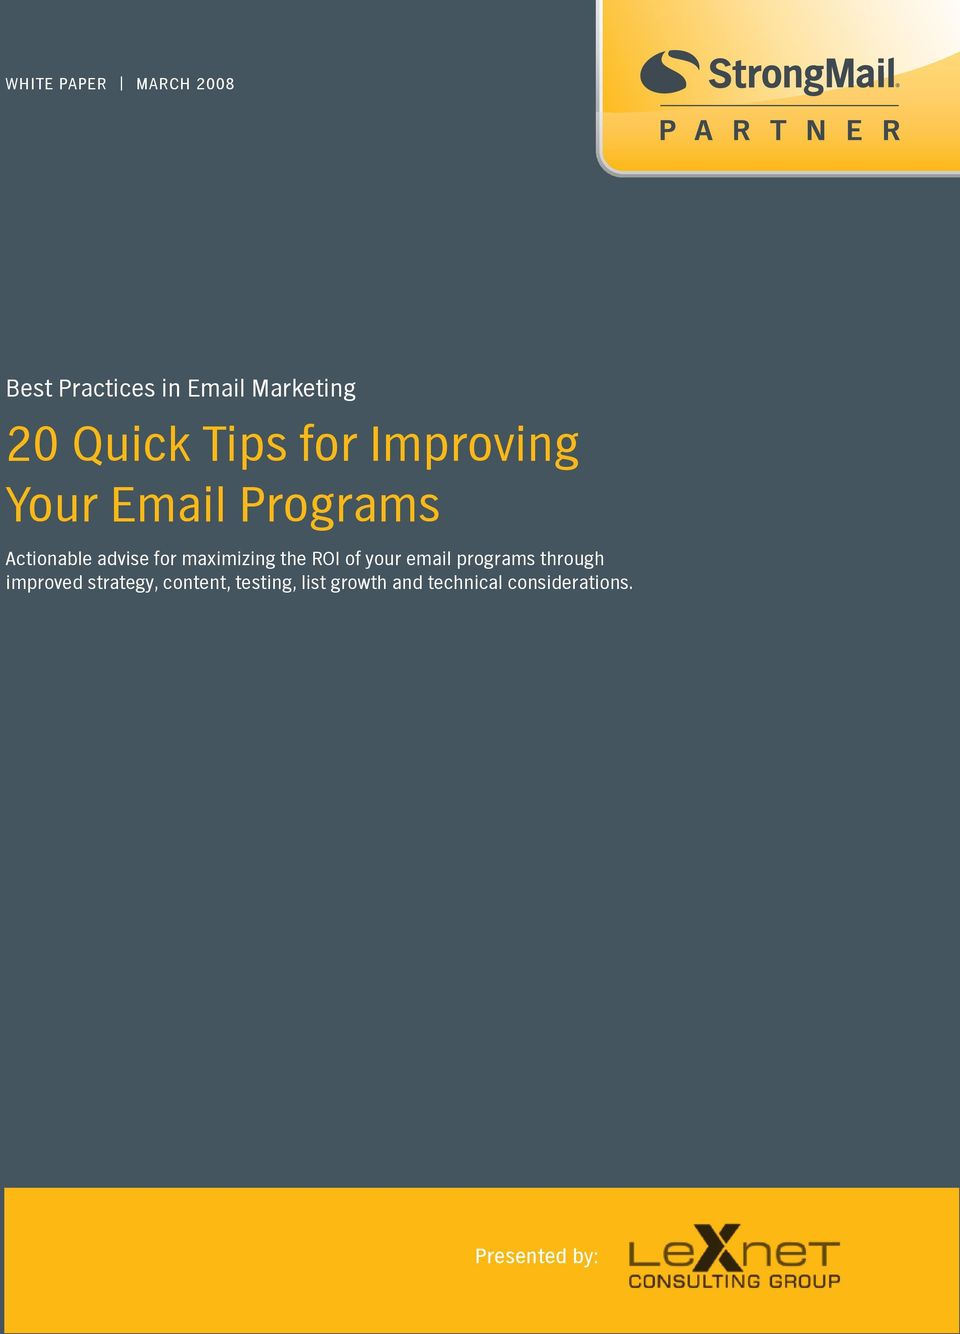 maximizing the ROI of your email programs through improved